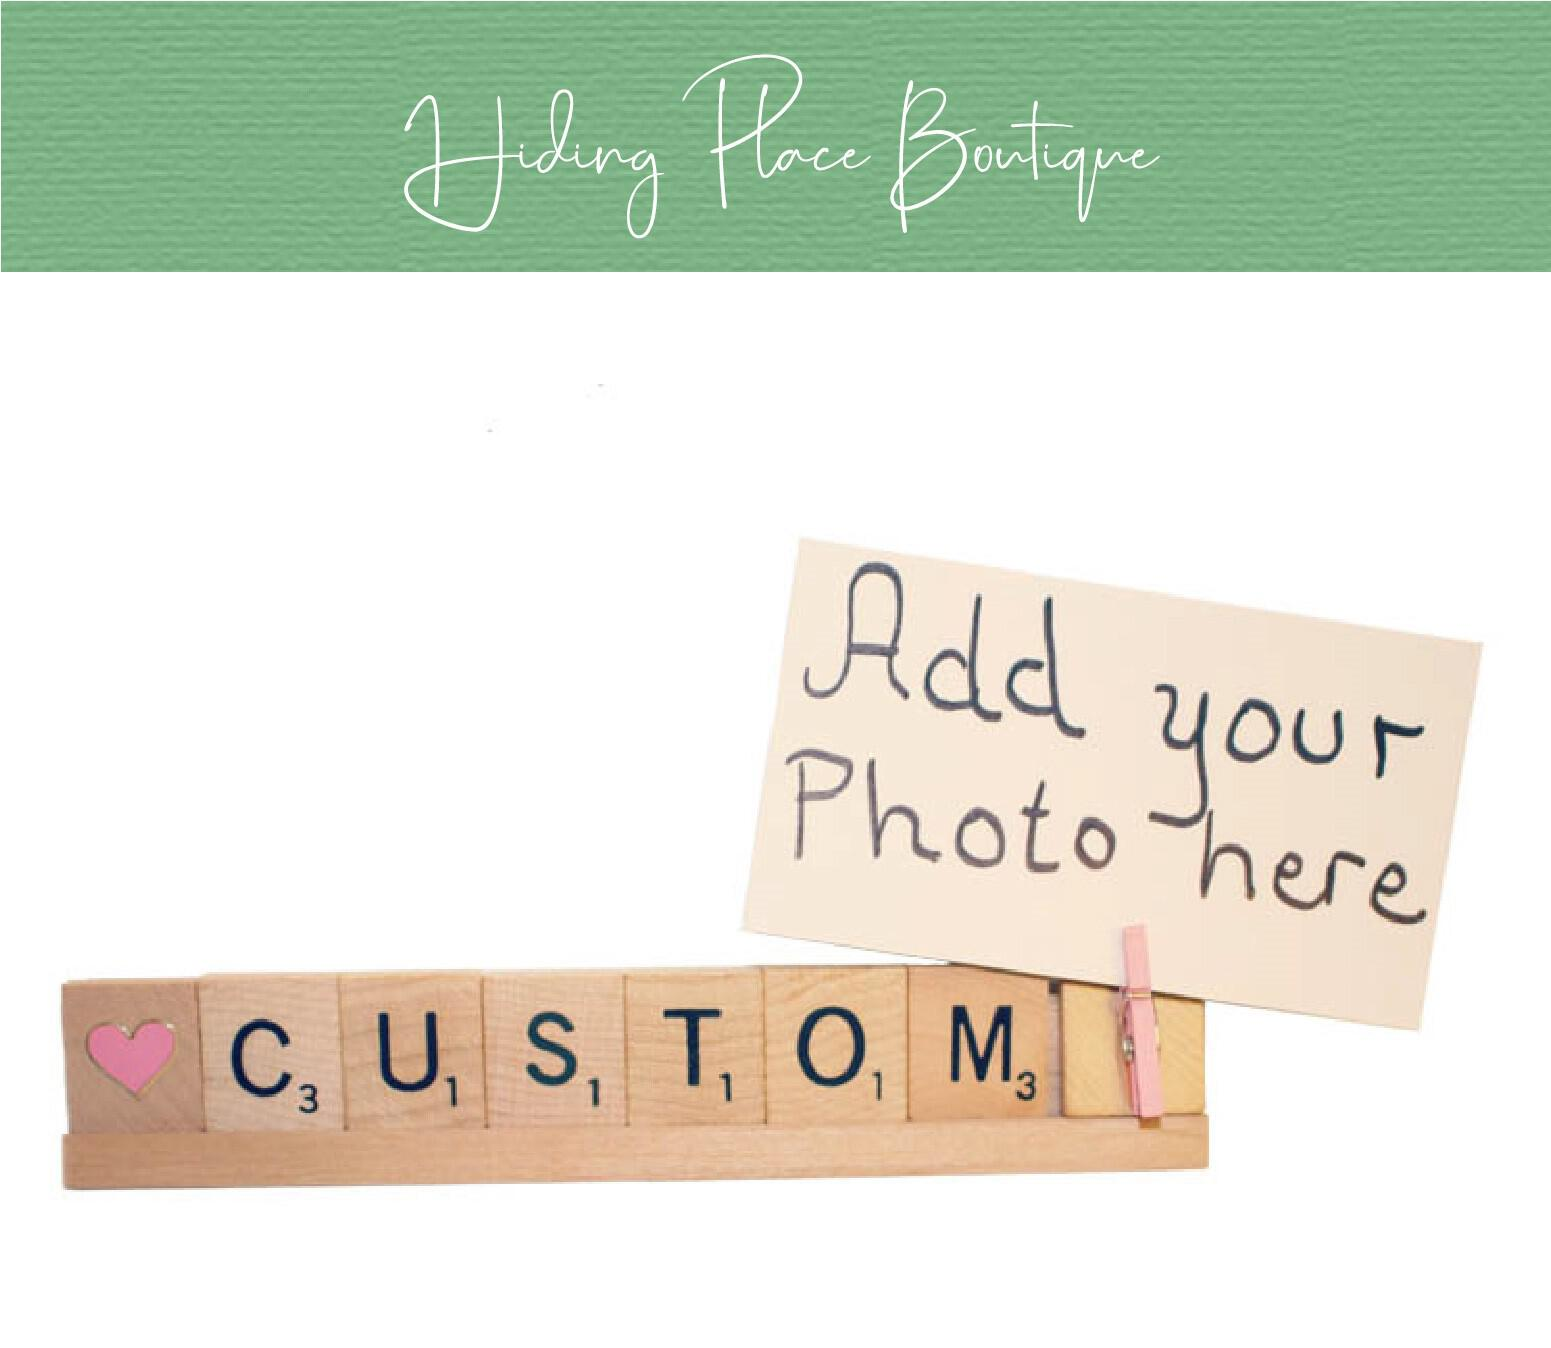 custom scrabble photo frame